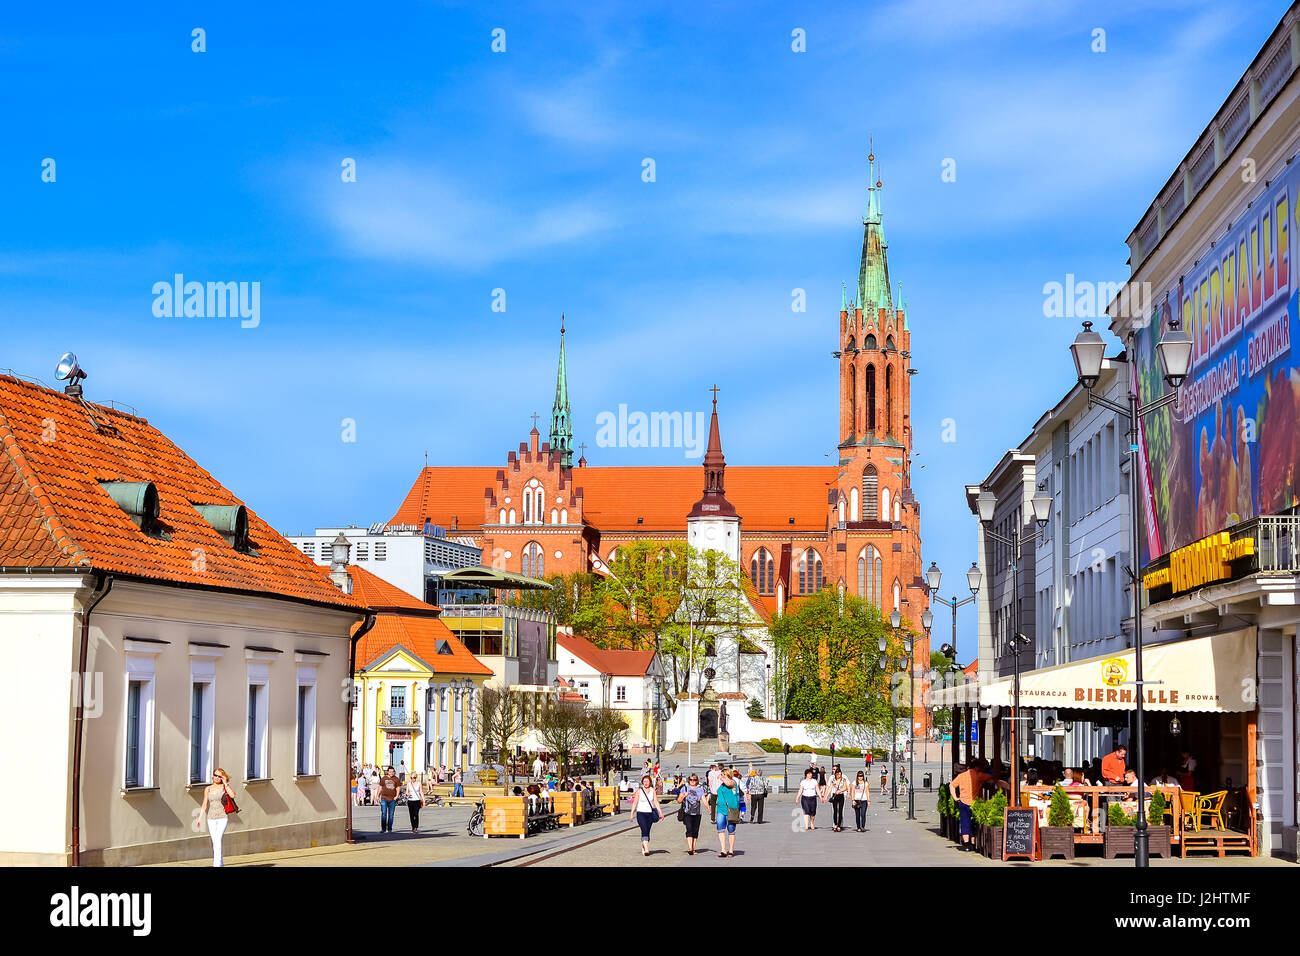 Bialystok, Poland - April 29, 2012: Tourists walk in sunny summer day on pavers central square of Kosciusko Market. - Stock Image